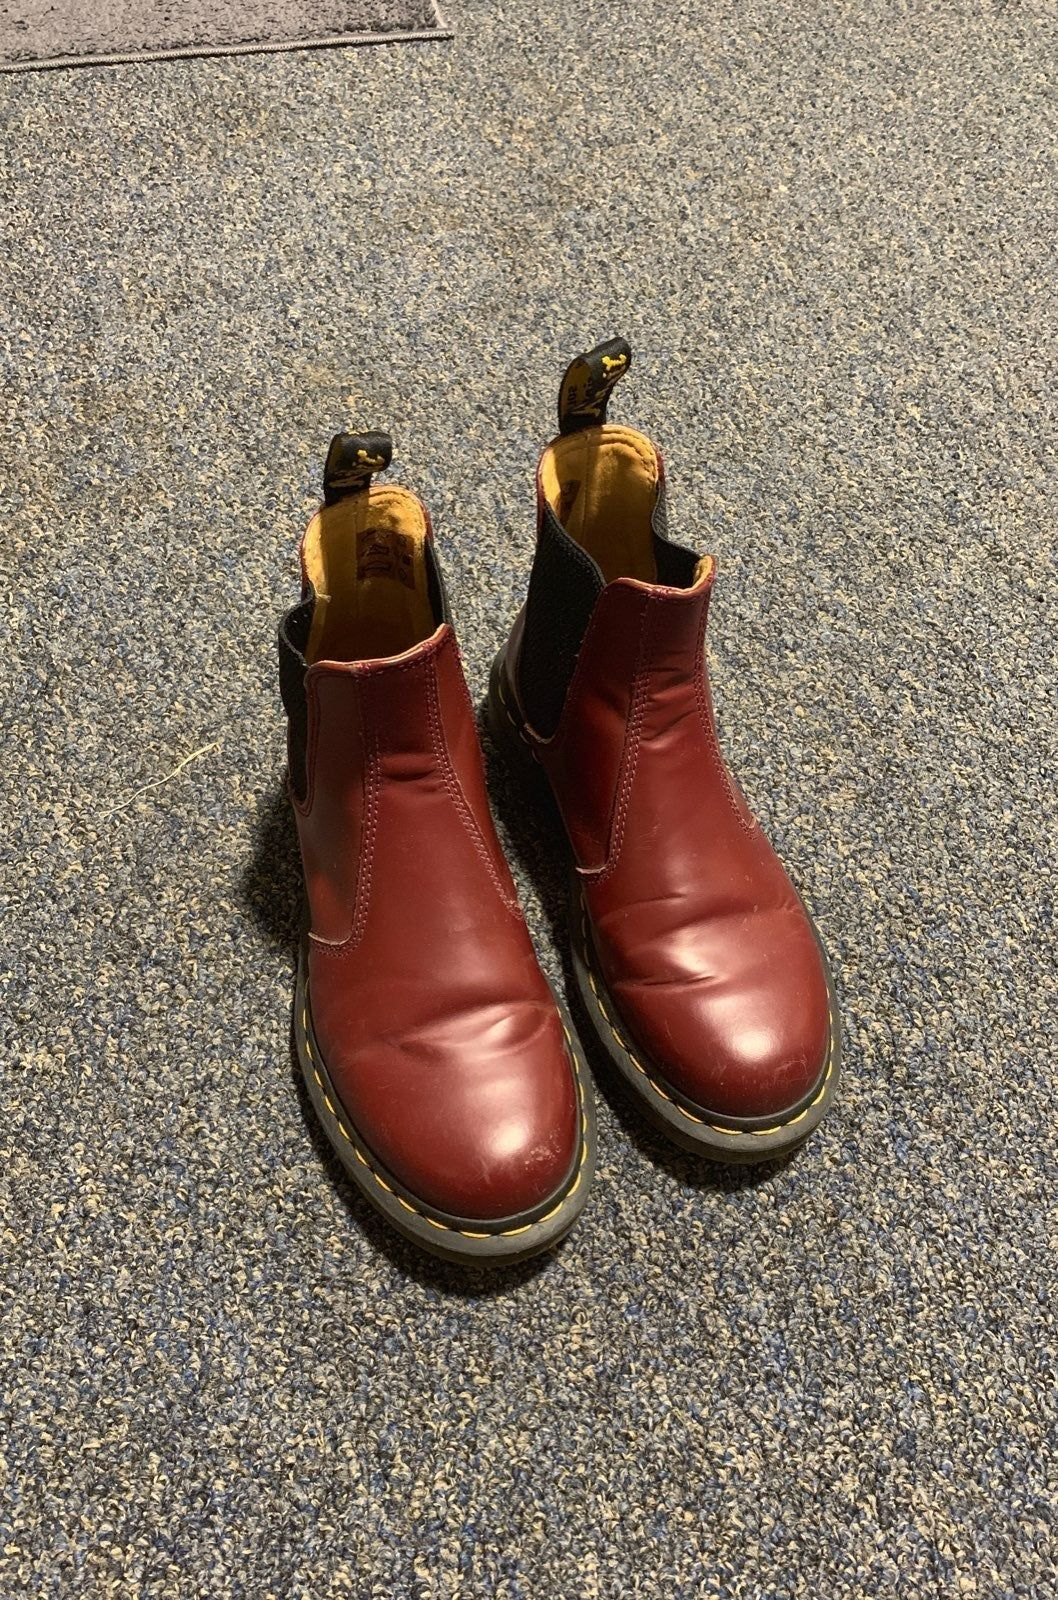 Pin on Dr. Martens Boots